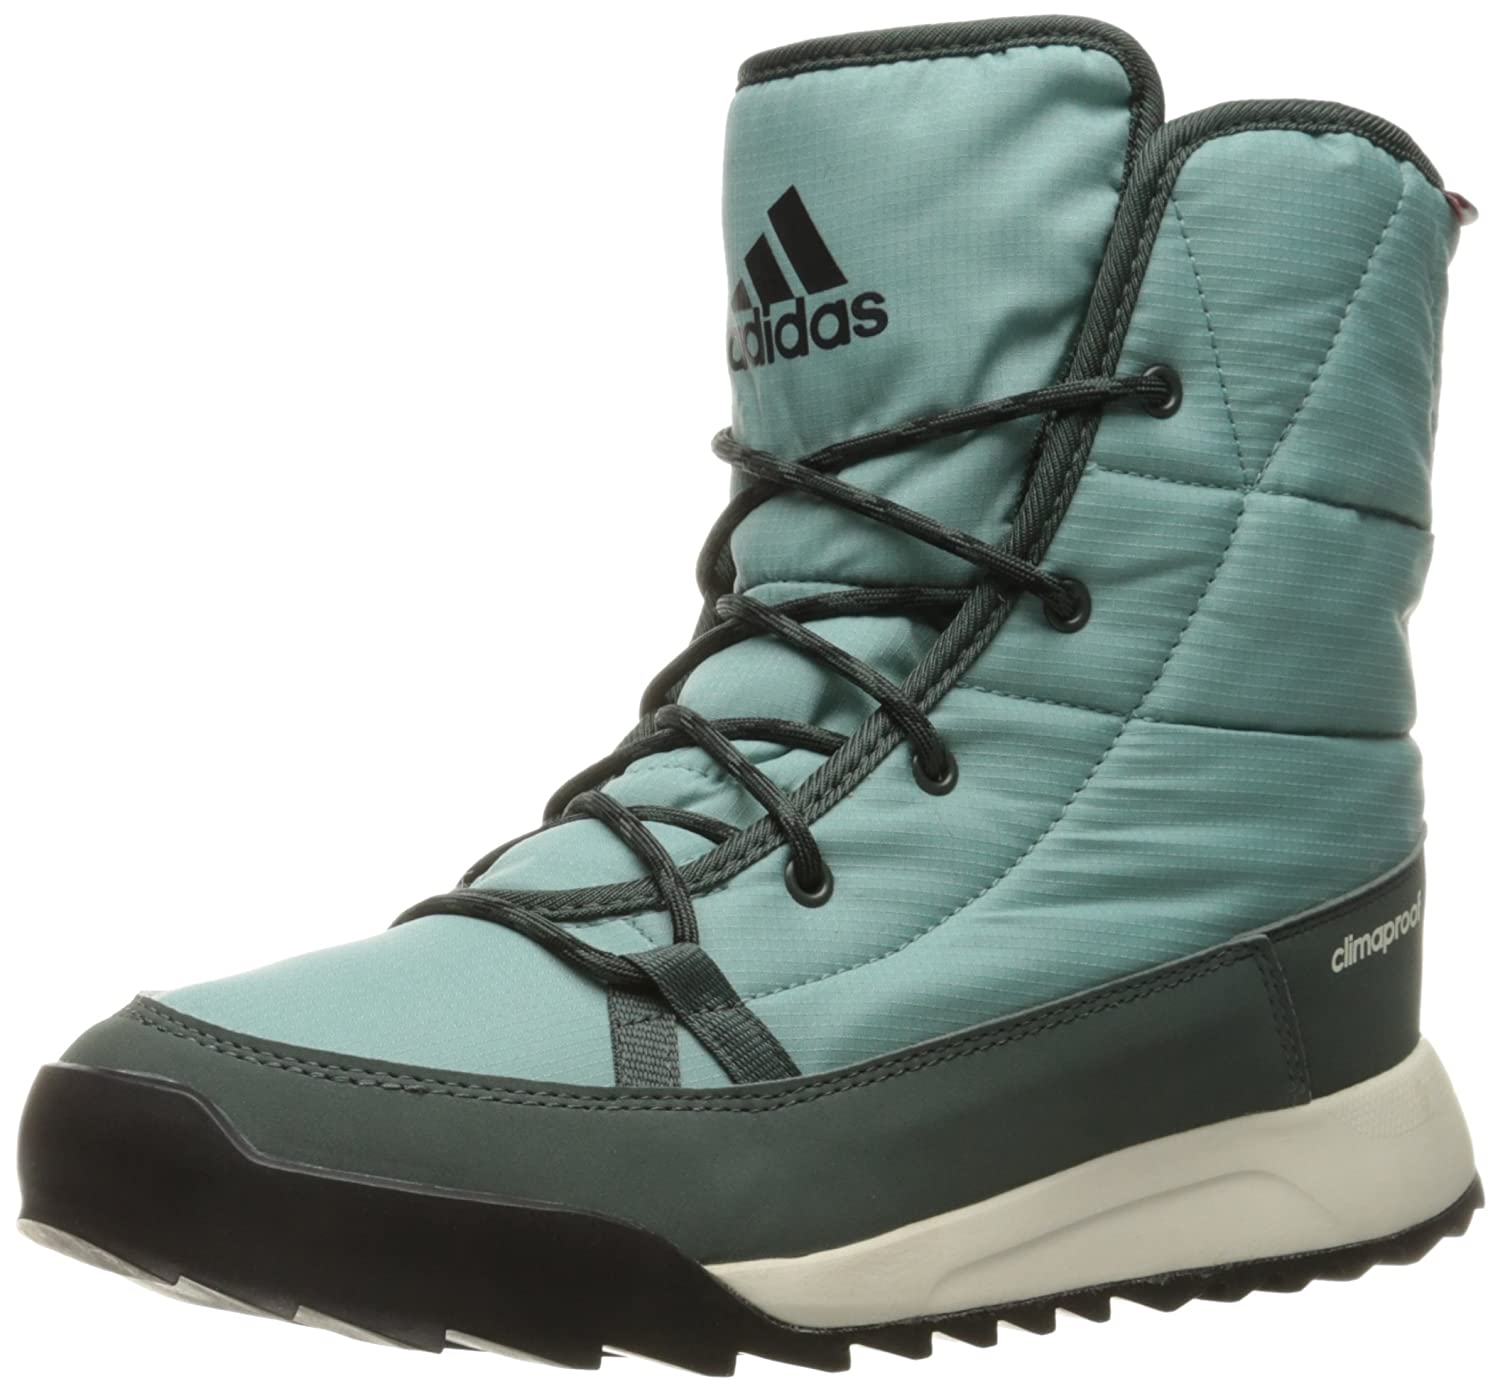 adidas outdoor Women's CW Choleah Insulated CP Snow Boot B018WSWEF0 7 B(M) US|Vapour Steel/Utility Ivy/Black